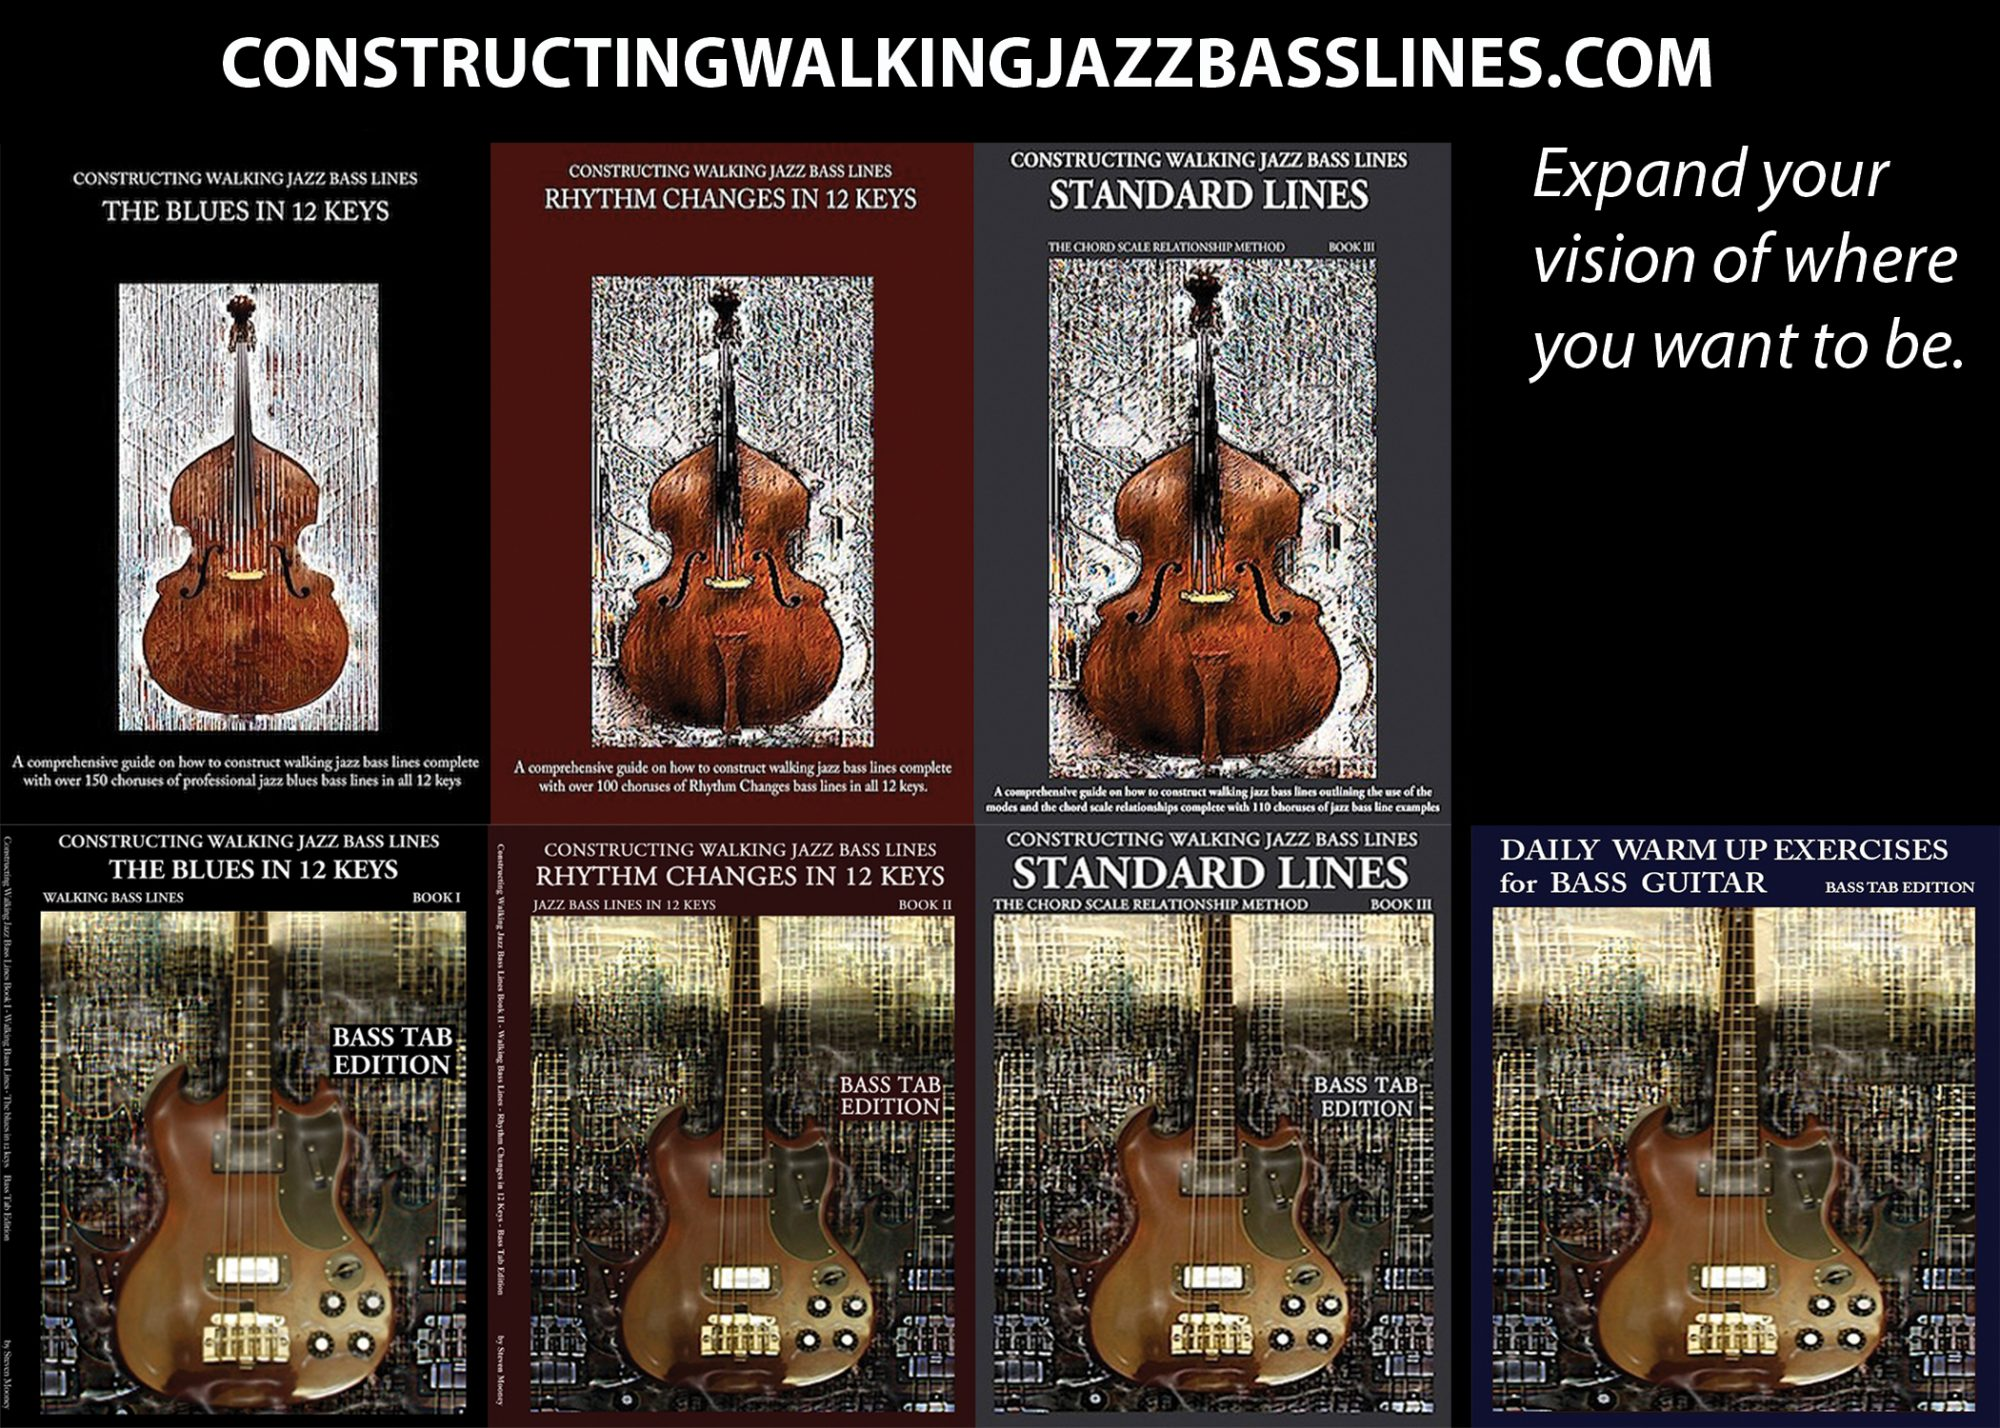 Construcing Walking Jazz Bass Lines